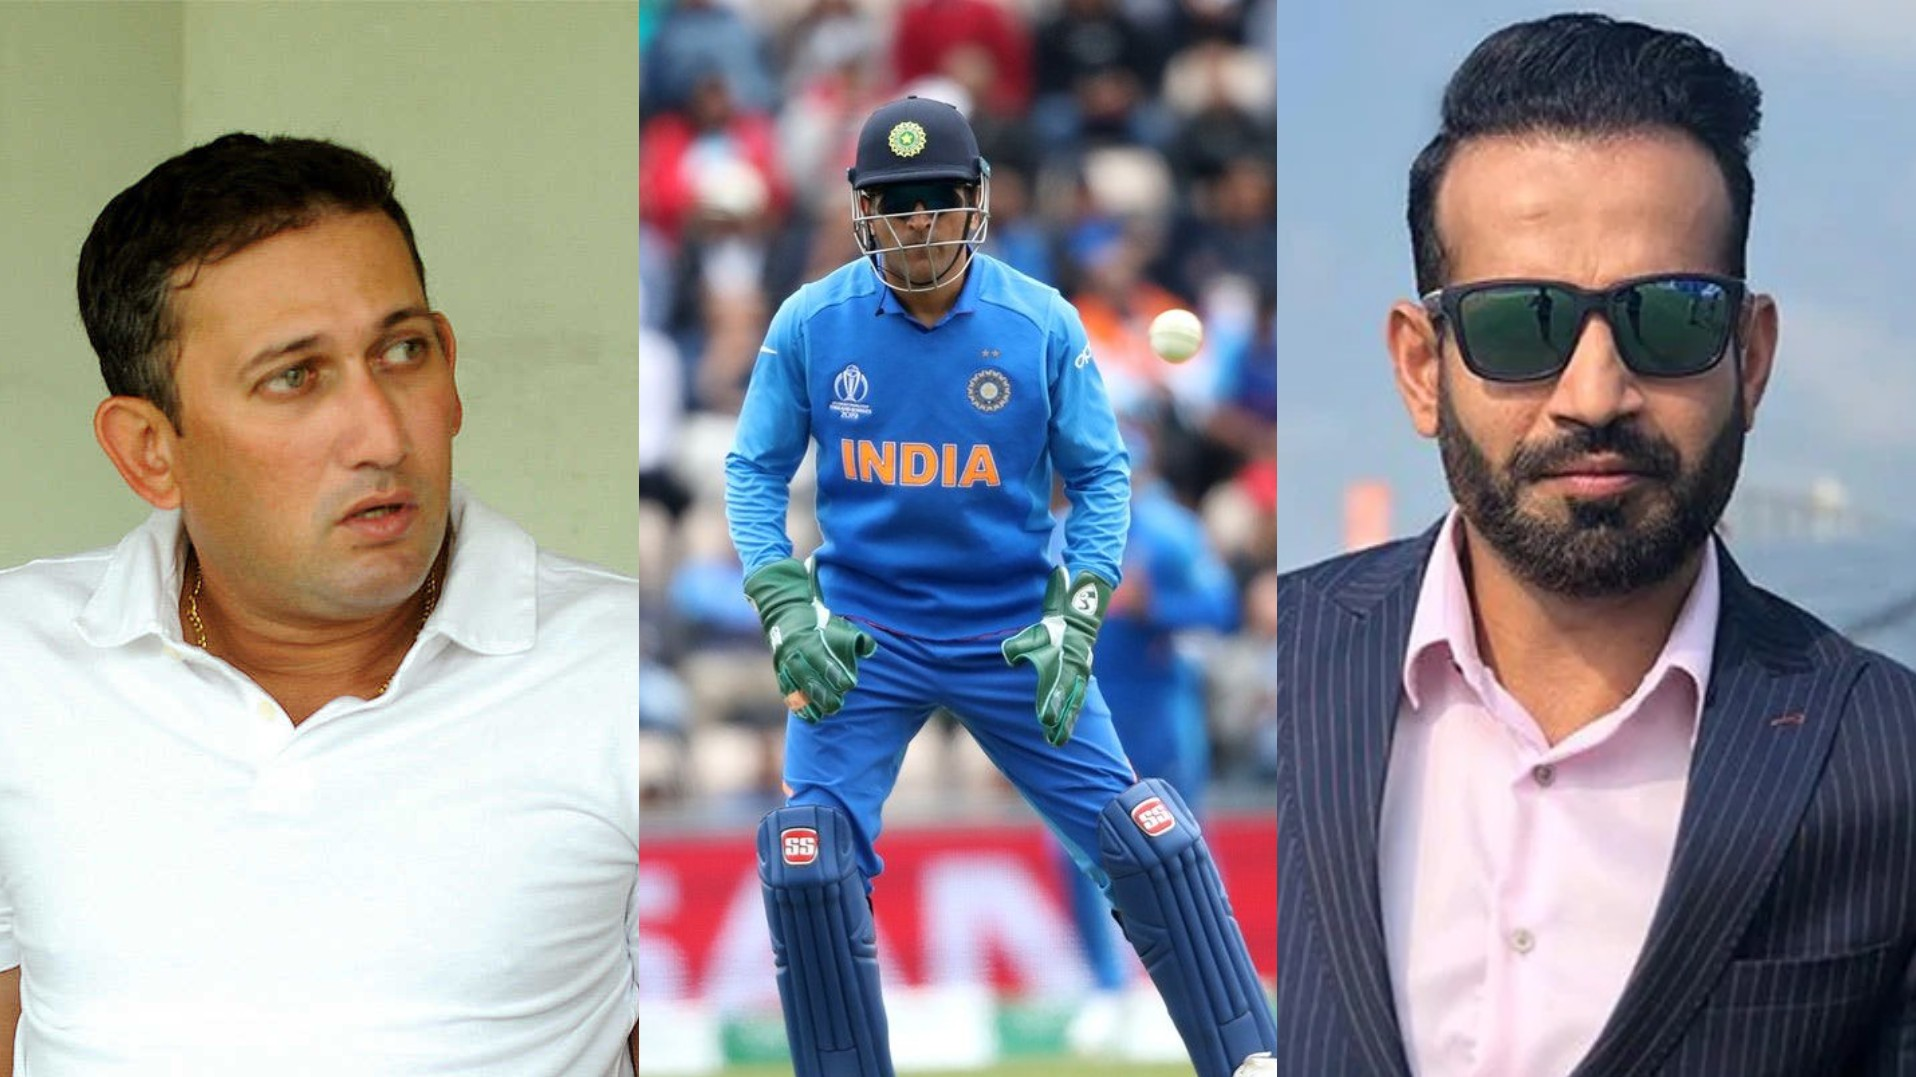 Irfan Pathan wants a farewell game for Dhoni, Agarkar lauds MCA's proposal of naming seat at Wankhede